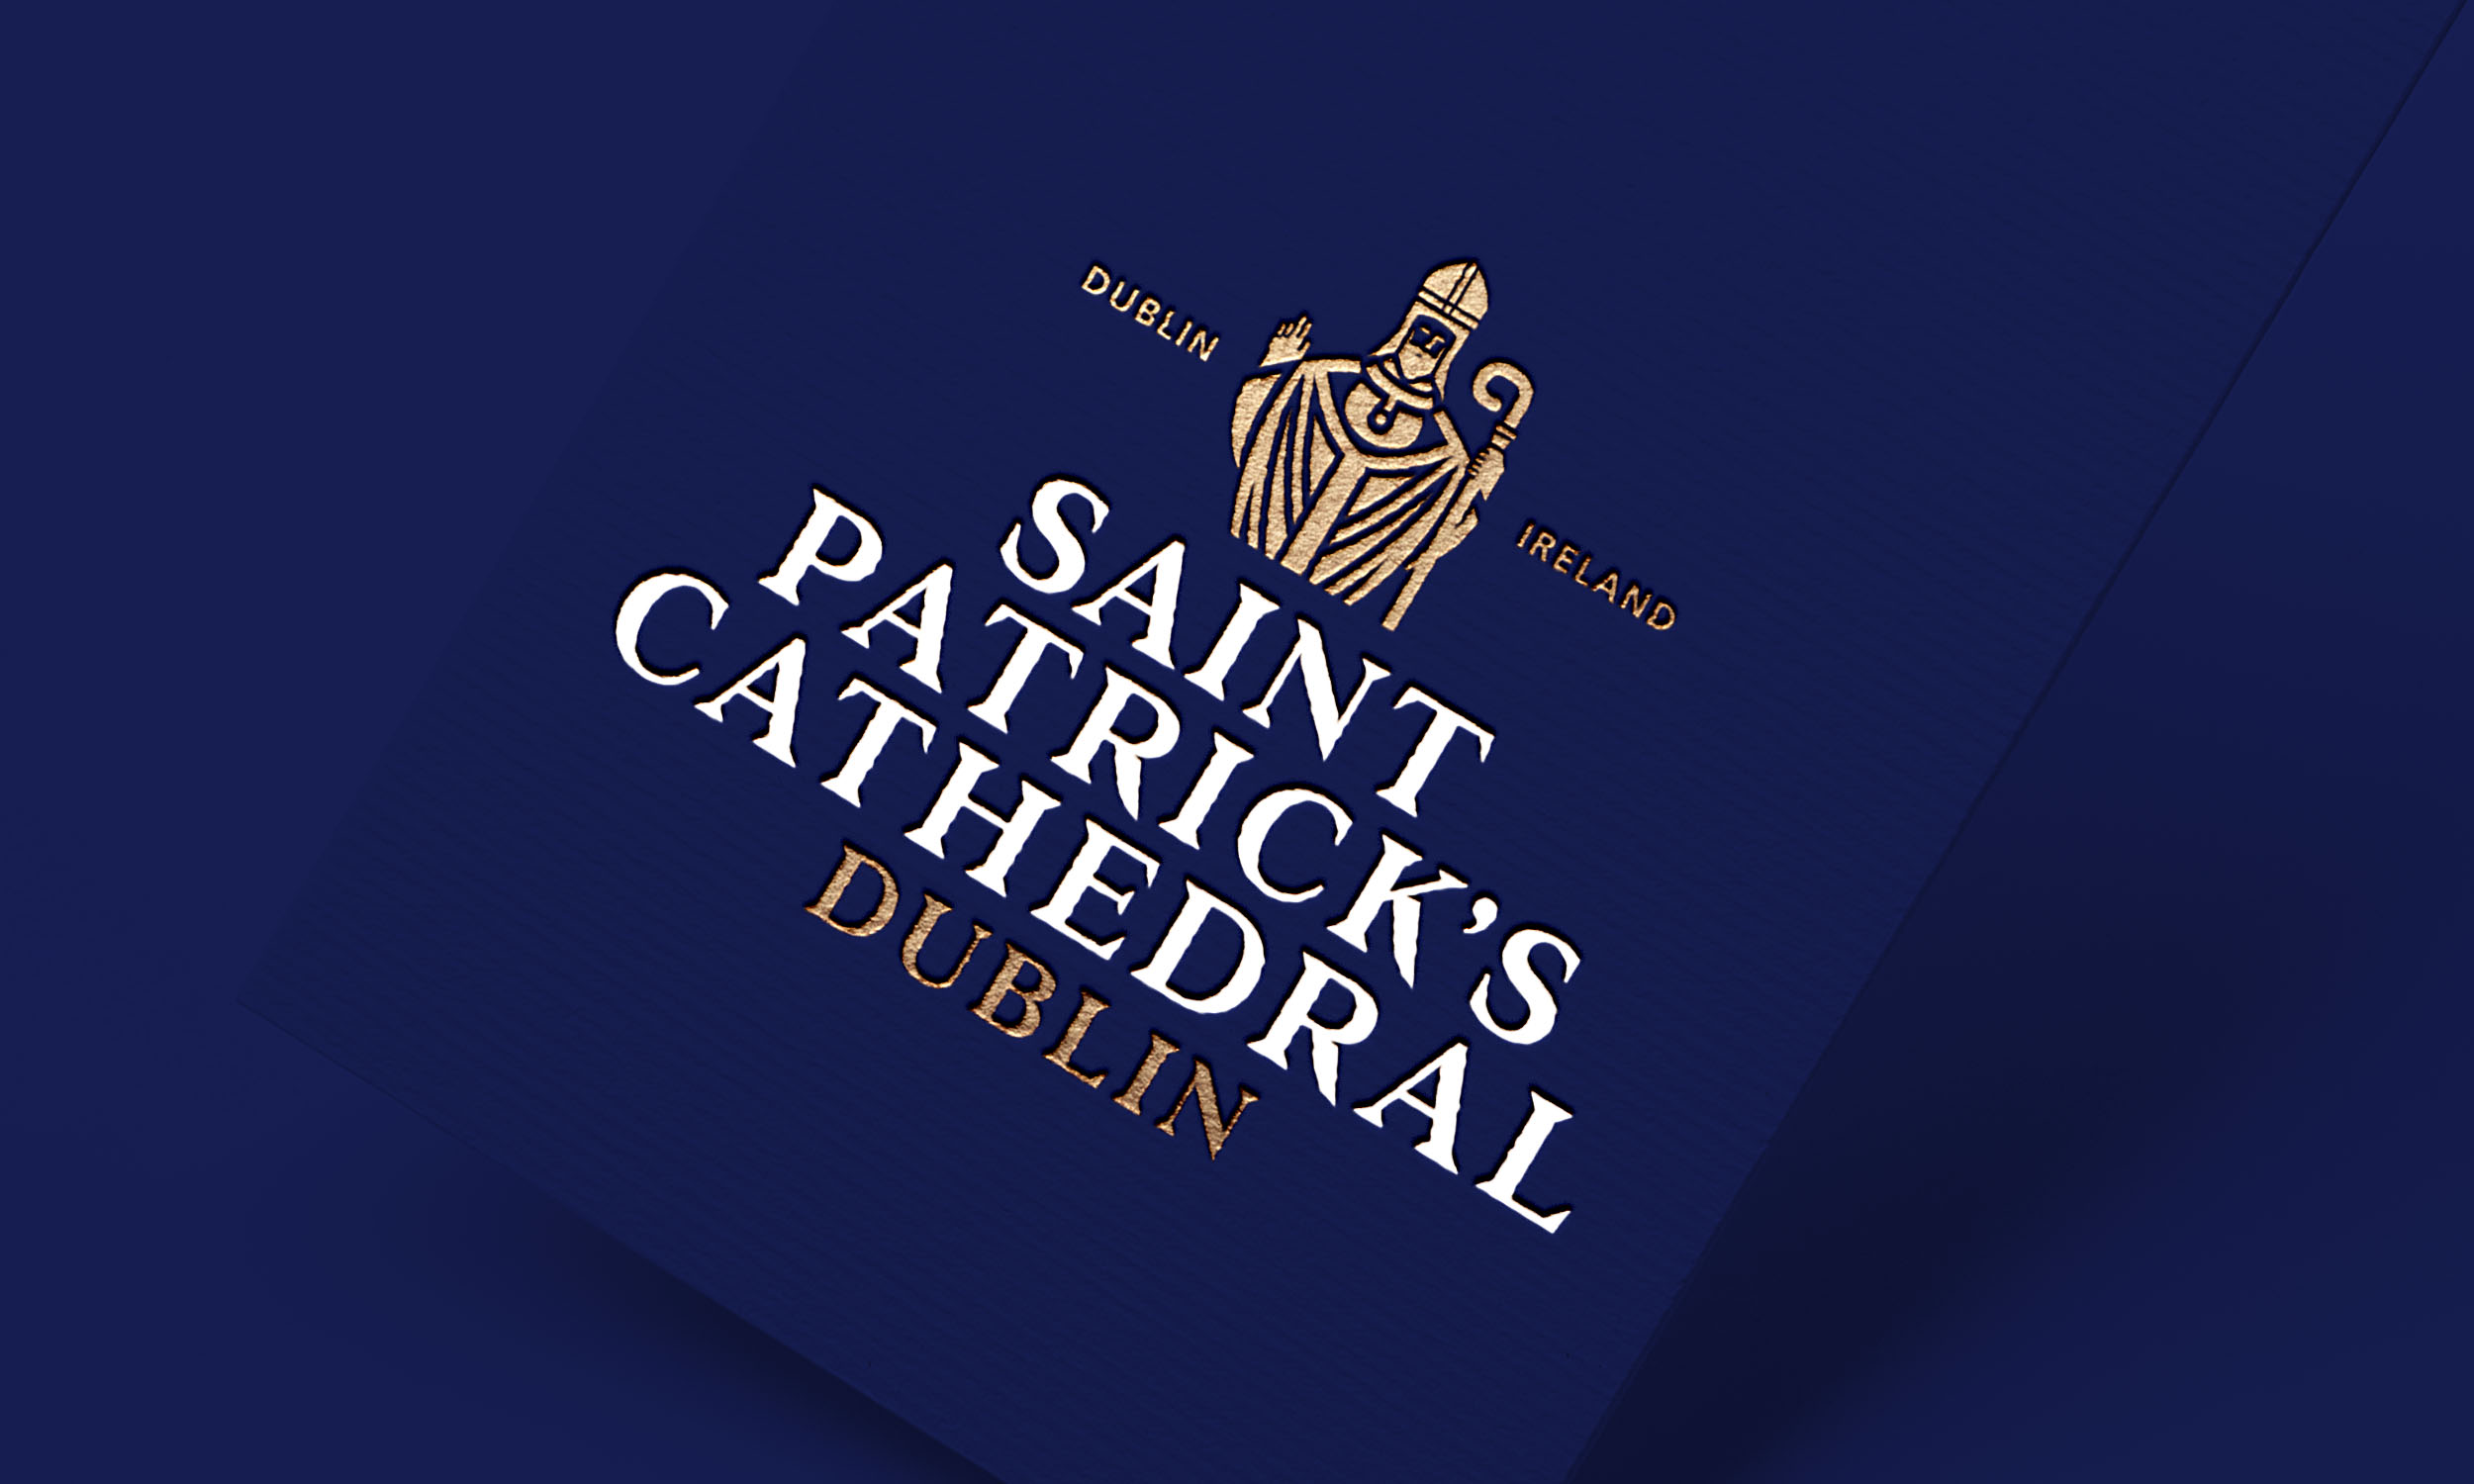 Cover image: Saint Patrick's Cathedral